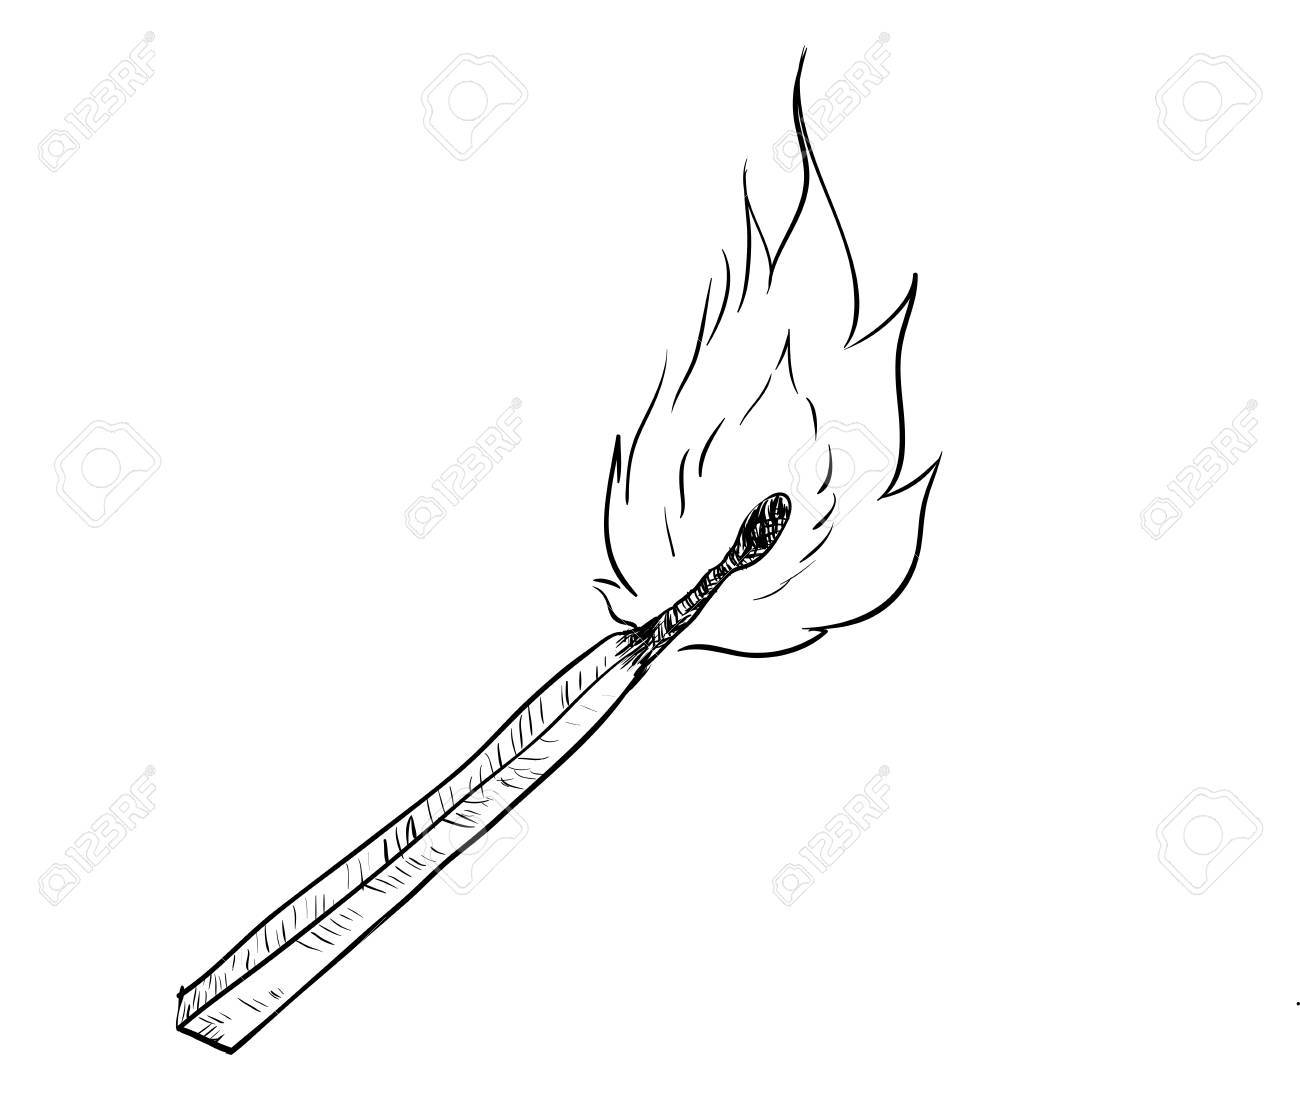 Hand drawing of fire burning match black and white simple line vector illustration for coloring